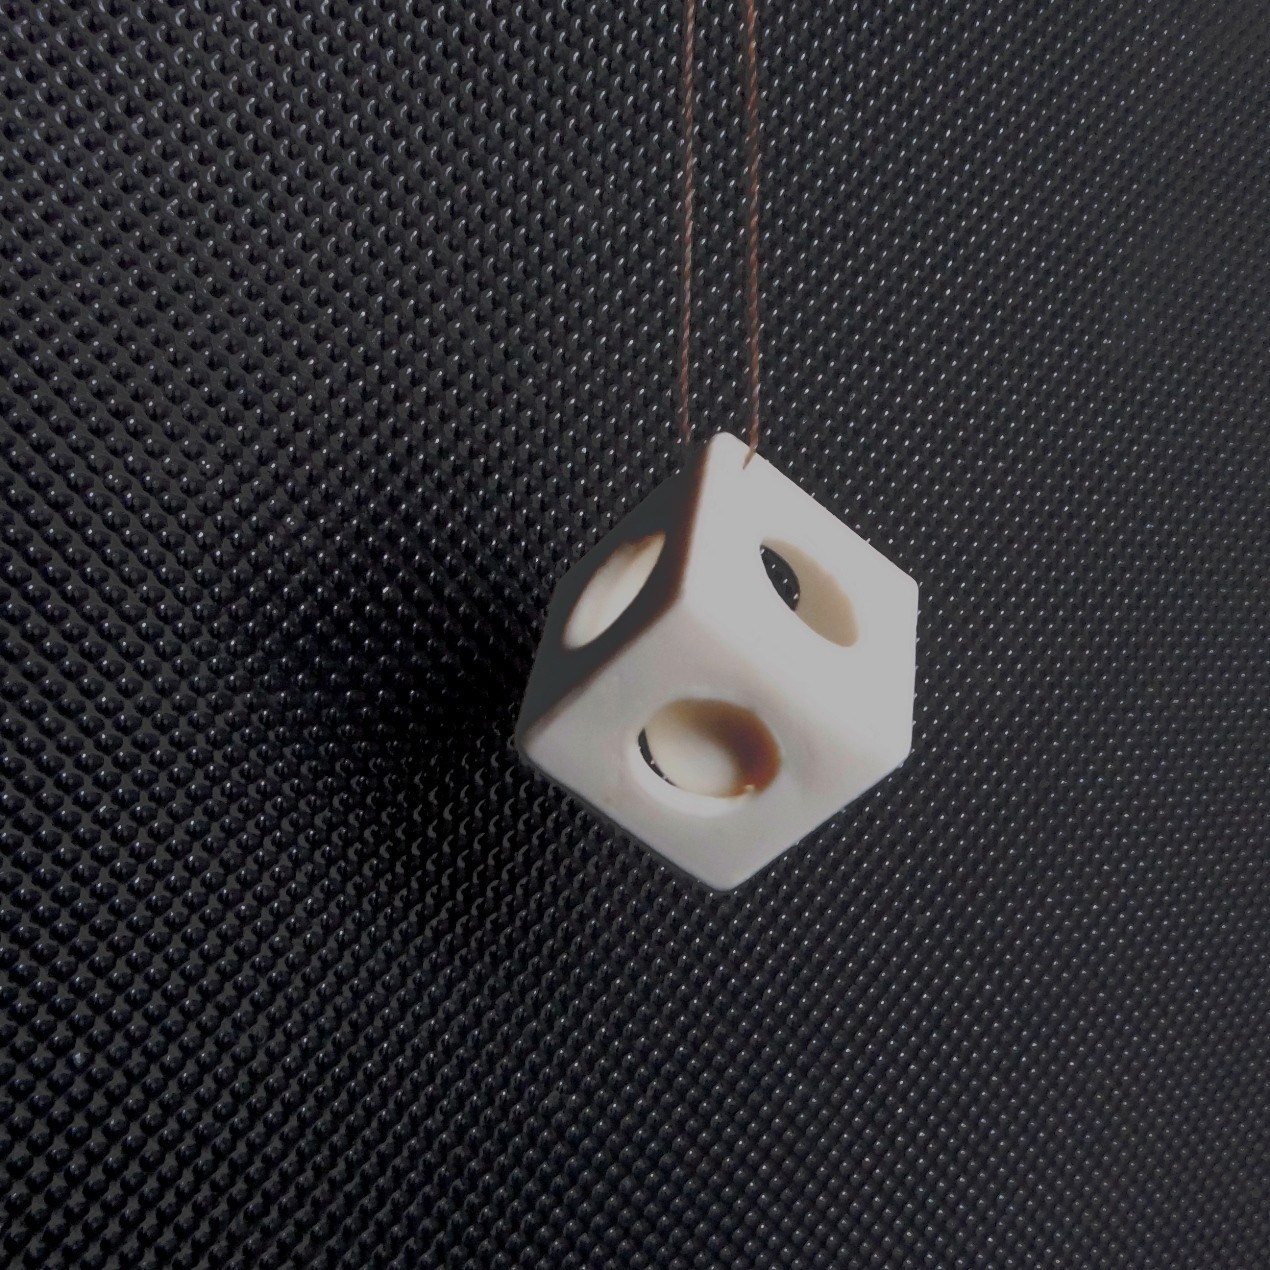 DSCF1123.JPG Download STL file A marble in a cube • 3D printing design, Papy_Boum